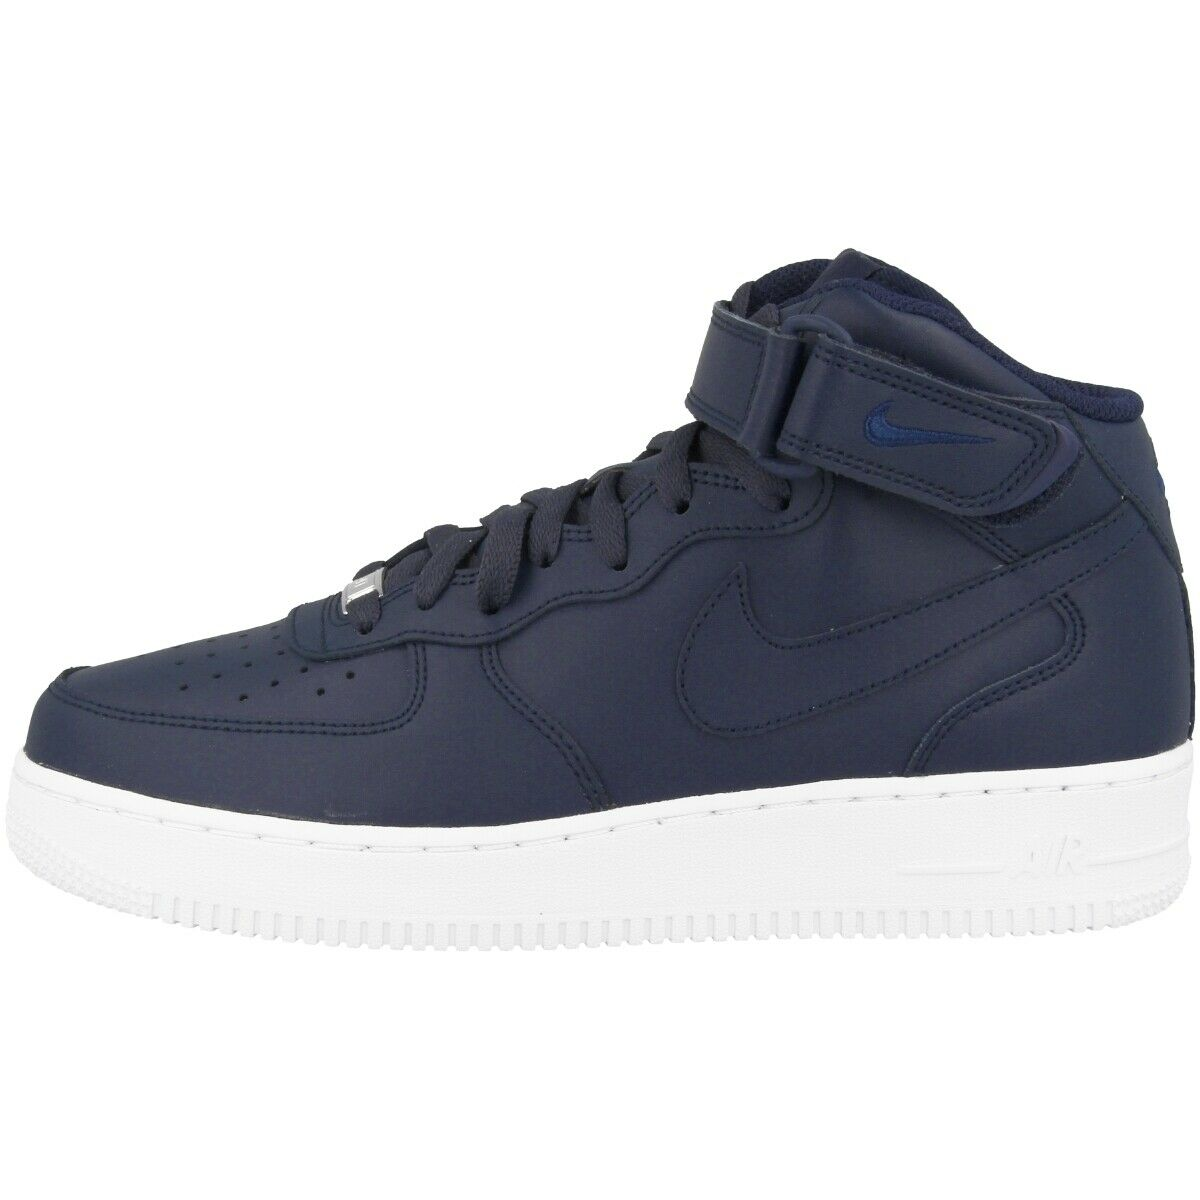 Nike Air Force 1 MID '07 Schuhe Retro High Top Turnschuhe obsidian Weiß 315123-415